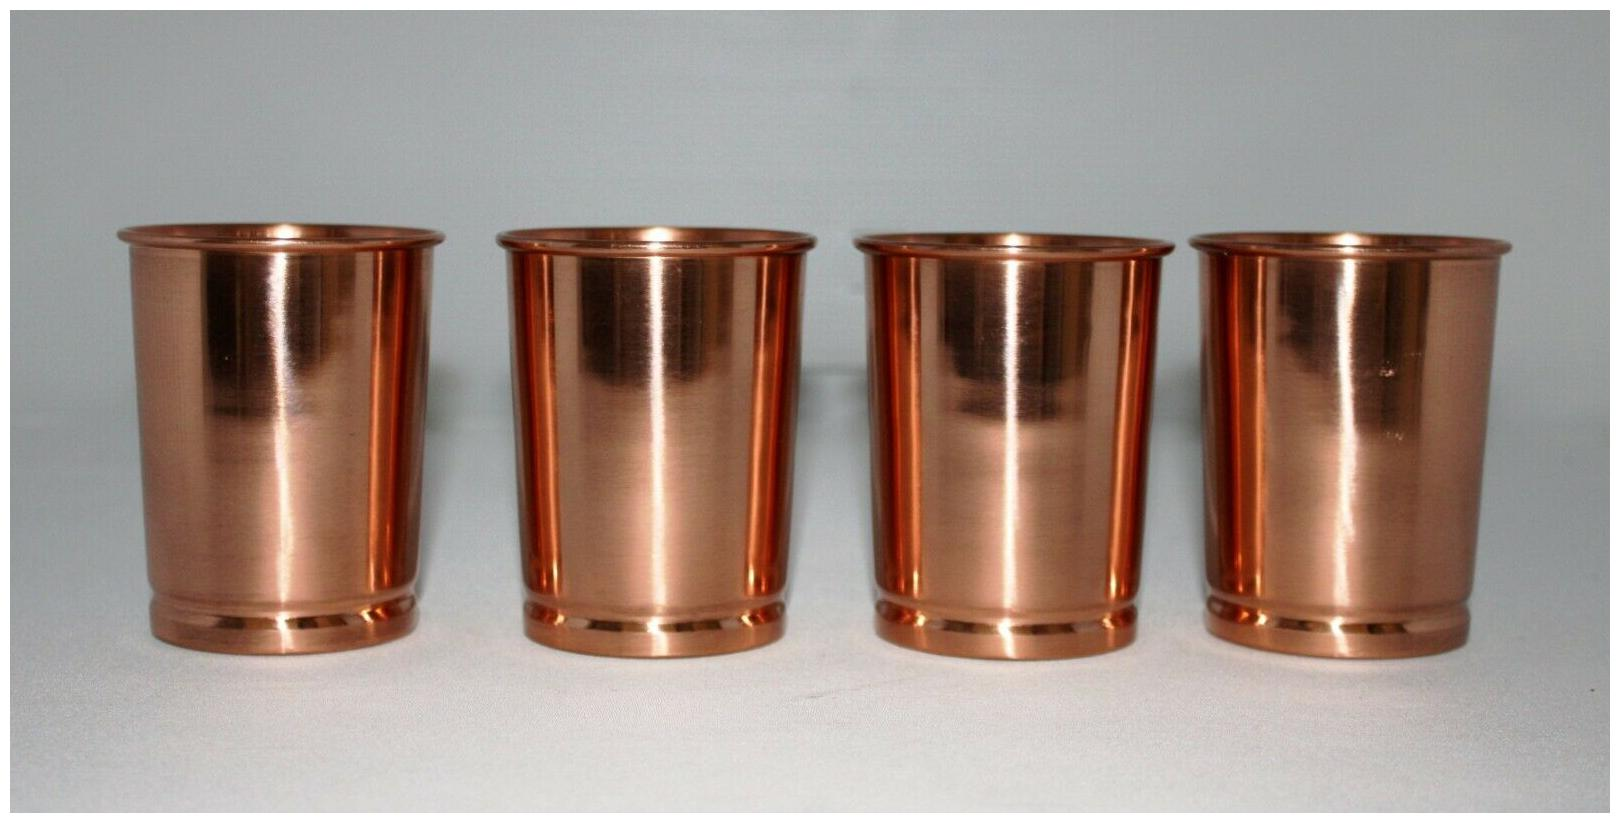 Pure Copper Plain Rings Glass Capacity 300 ml Drink-ware Serve-ware Glass-Set-2